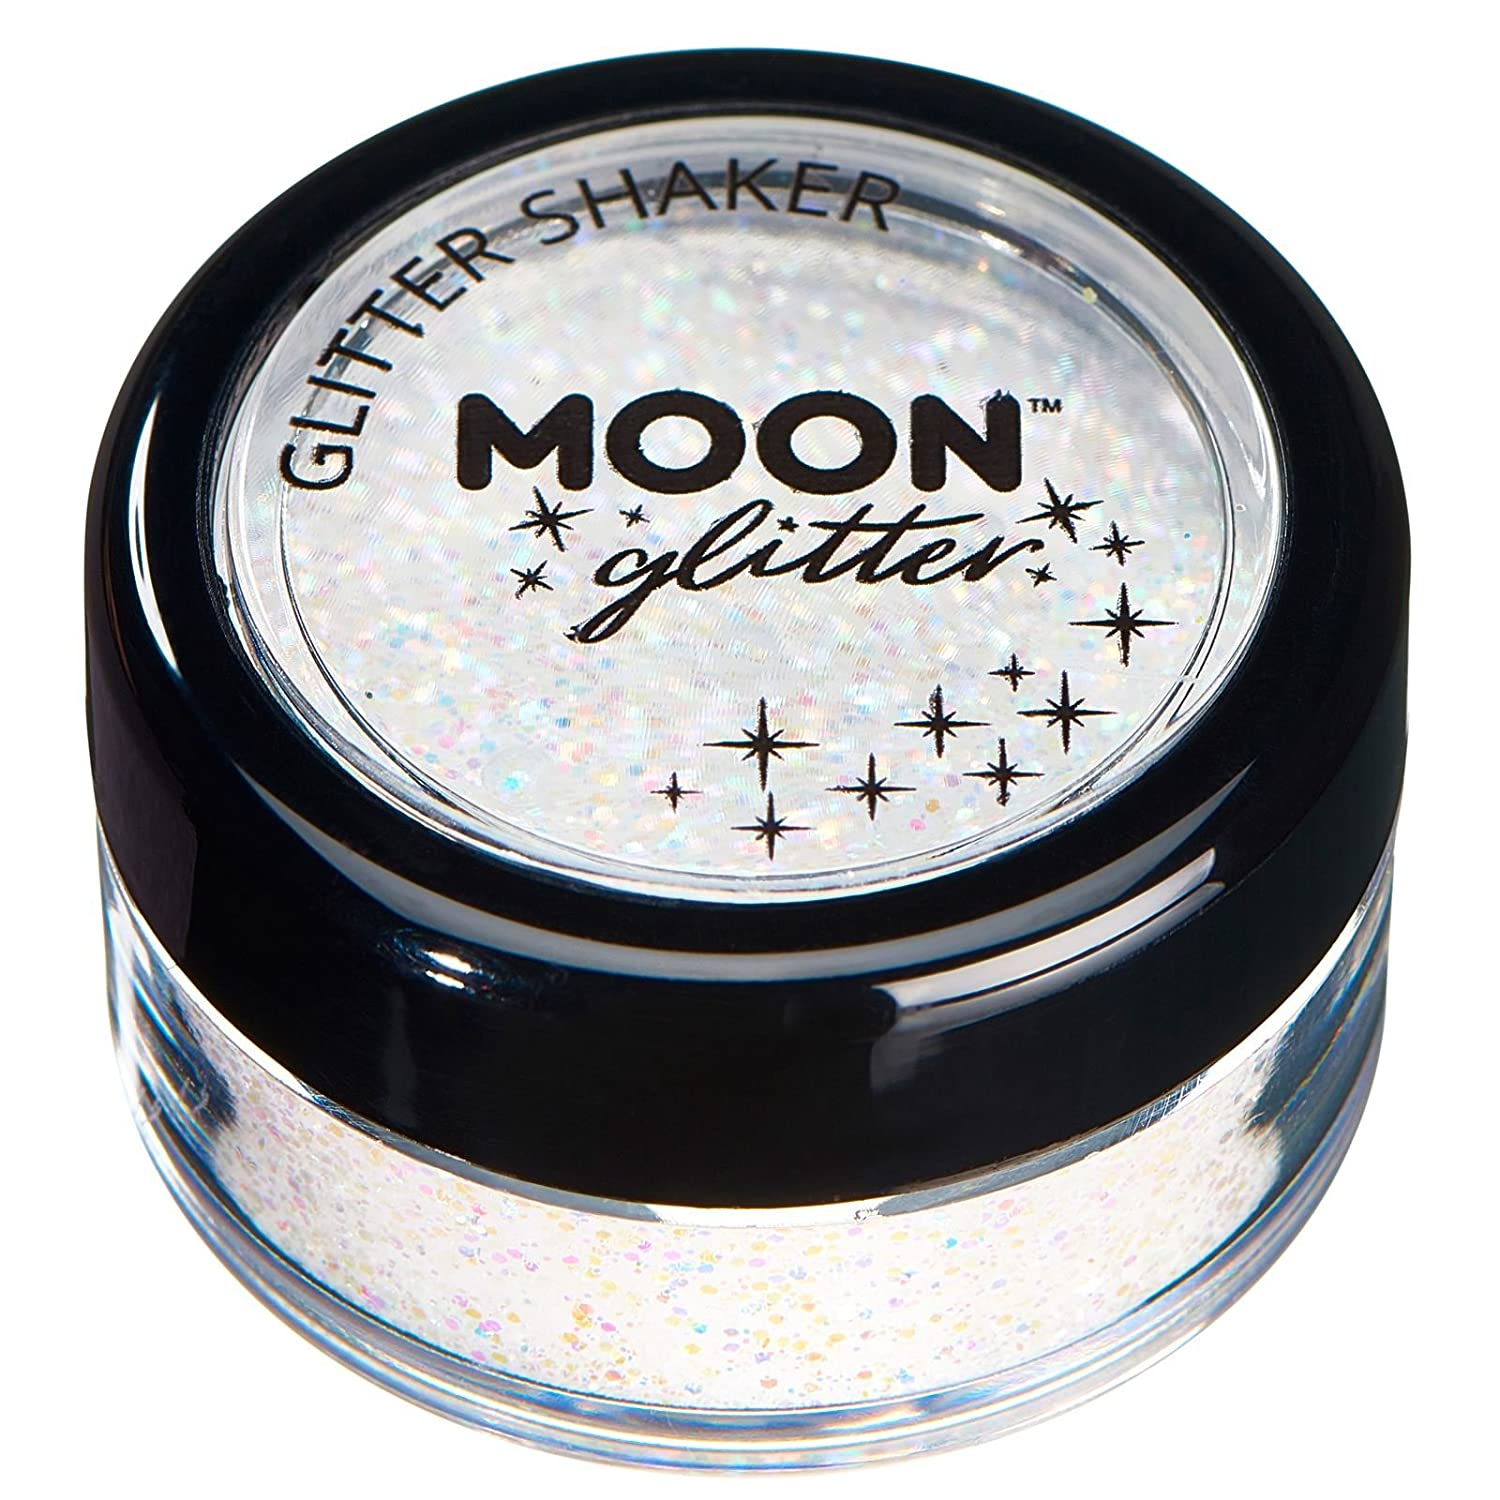 Pastel Glitter Shakers by Moon Glitter – 100% Cosmetic Glitter for Face, Body, Nails, Hair and Lips - 0.10oz - White